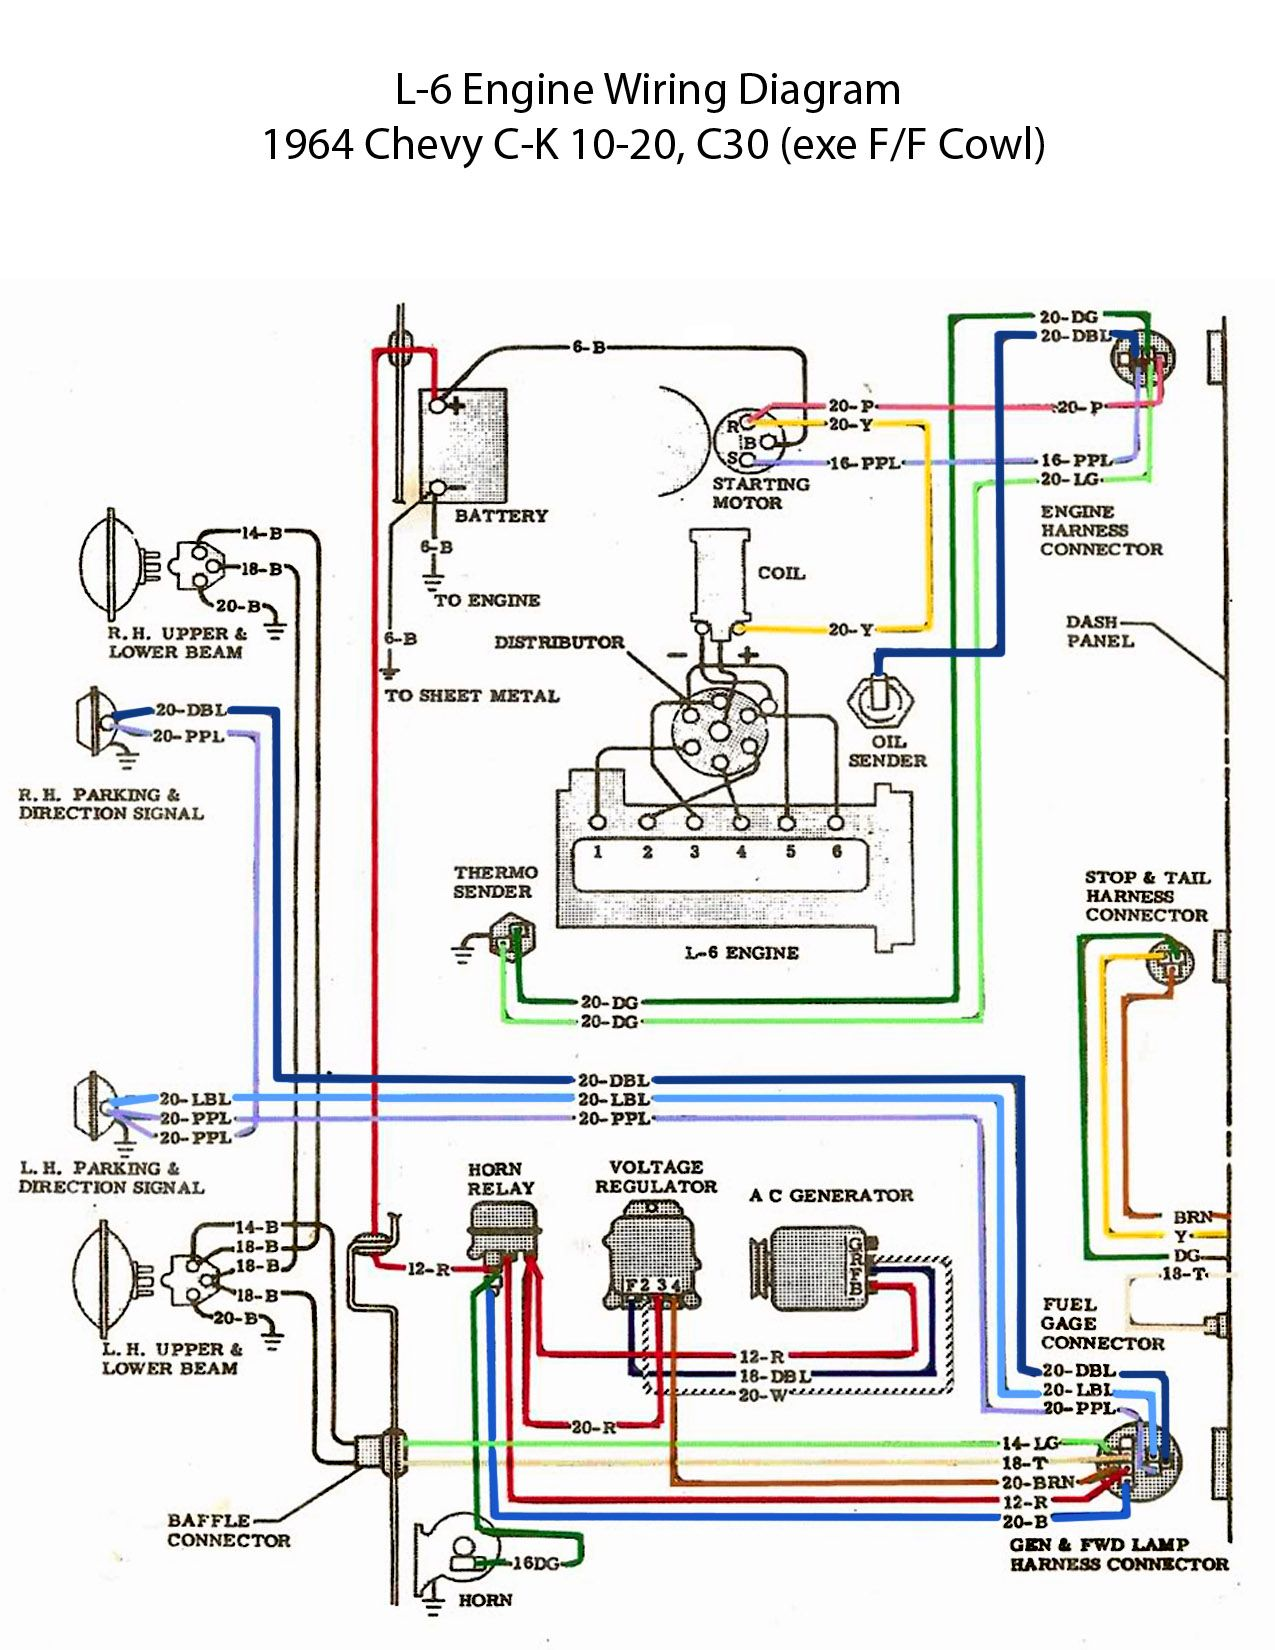 electric l 6 engine wiring diagram 60s chevy c10 wiring chevy cruze 2013 engine wiring diagram chevy engine wiring [ 1275 x 1650 Pixel ]